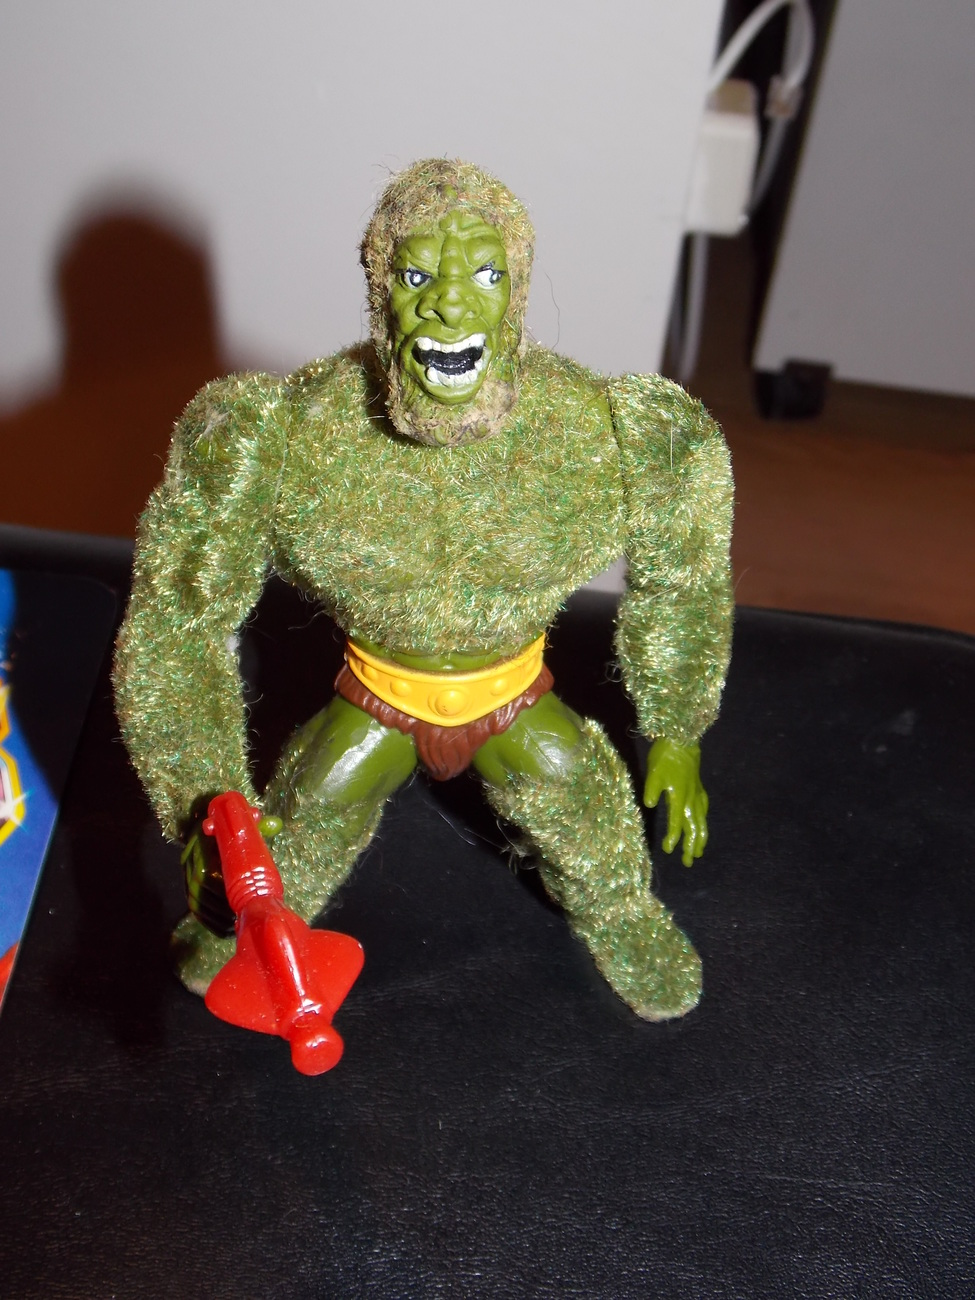 Vintage 1984 Masters Of The Universe Moss Man Figure With Gun and Cardback